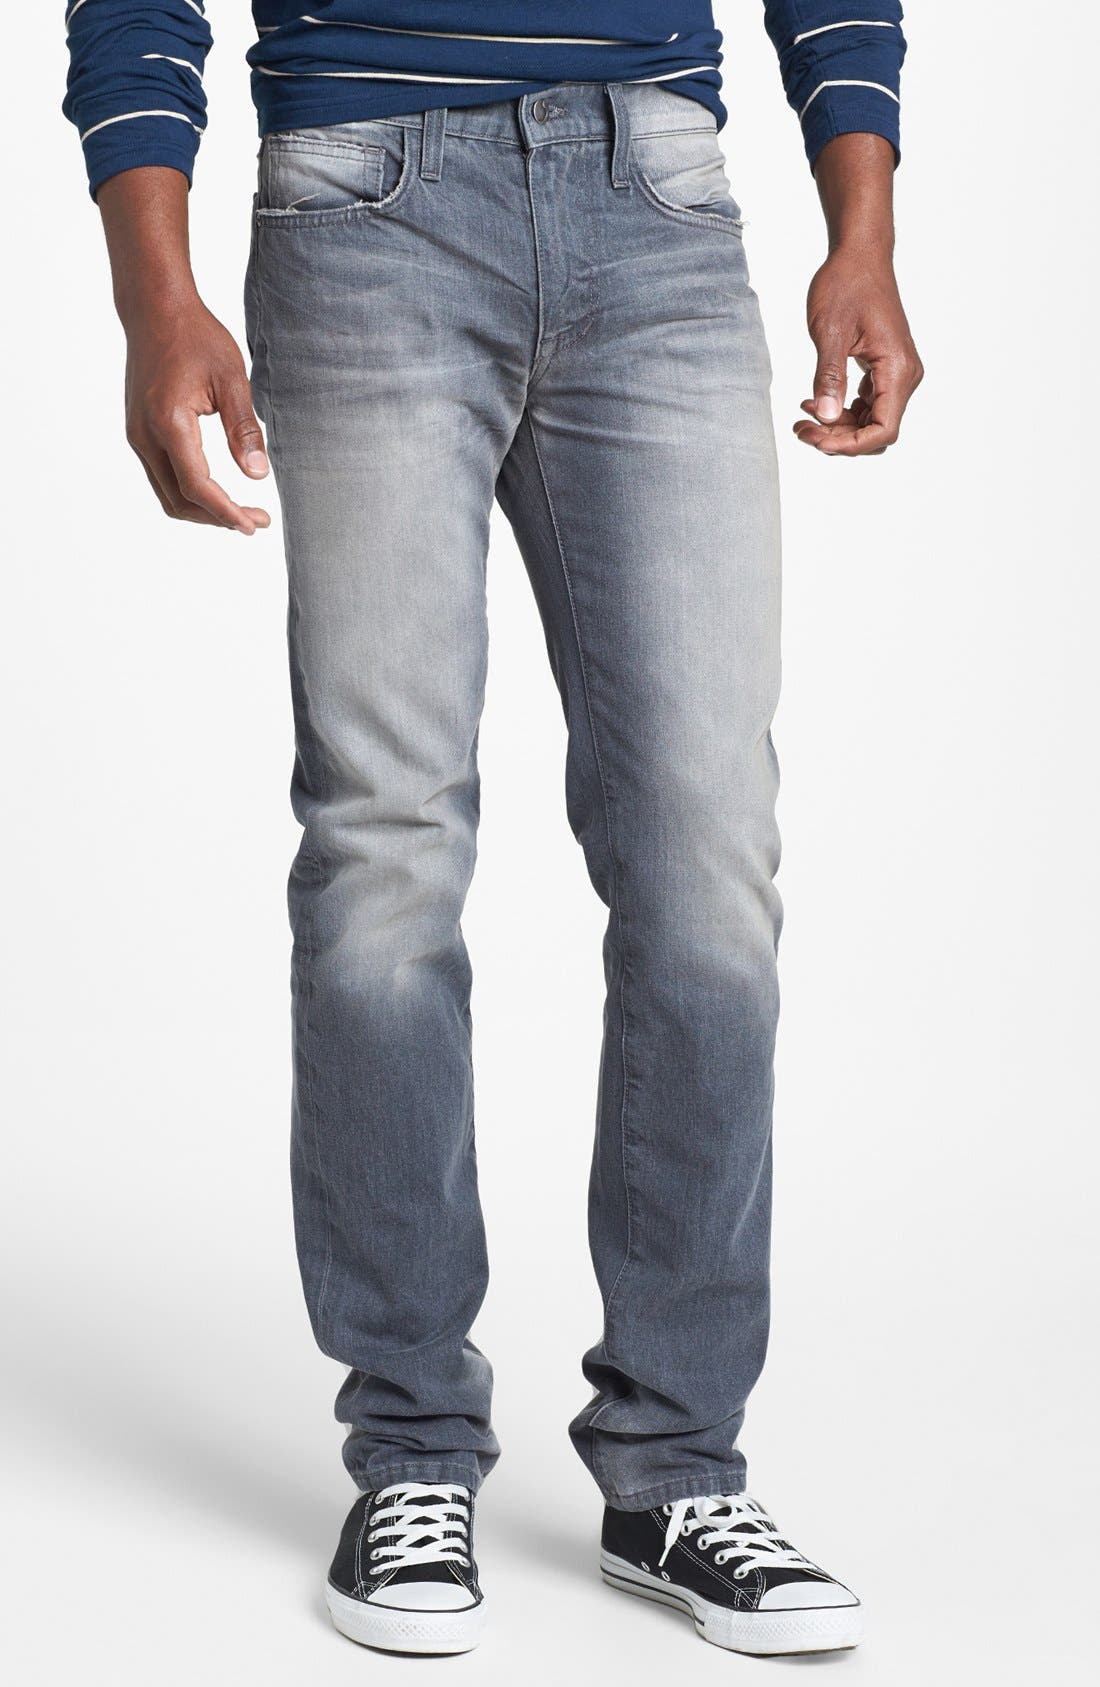 Alternate Image 1 Selected - Joe's 'Brixton' Slim Fit Jeans (Jaysen)